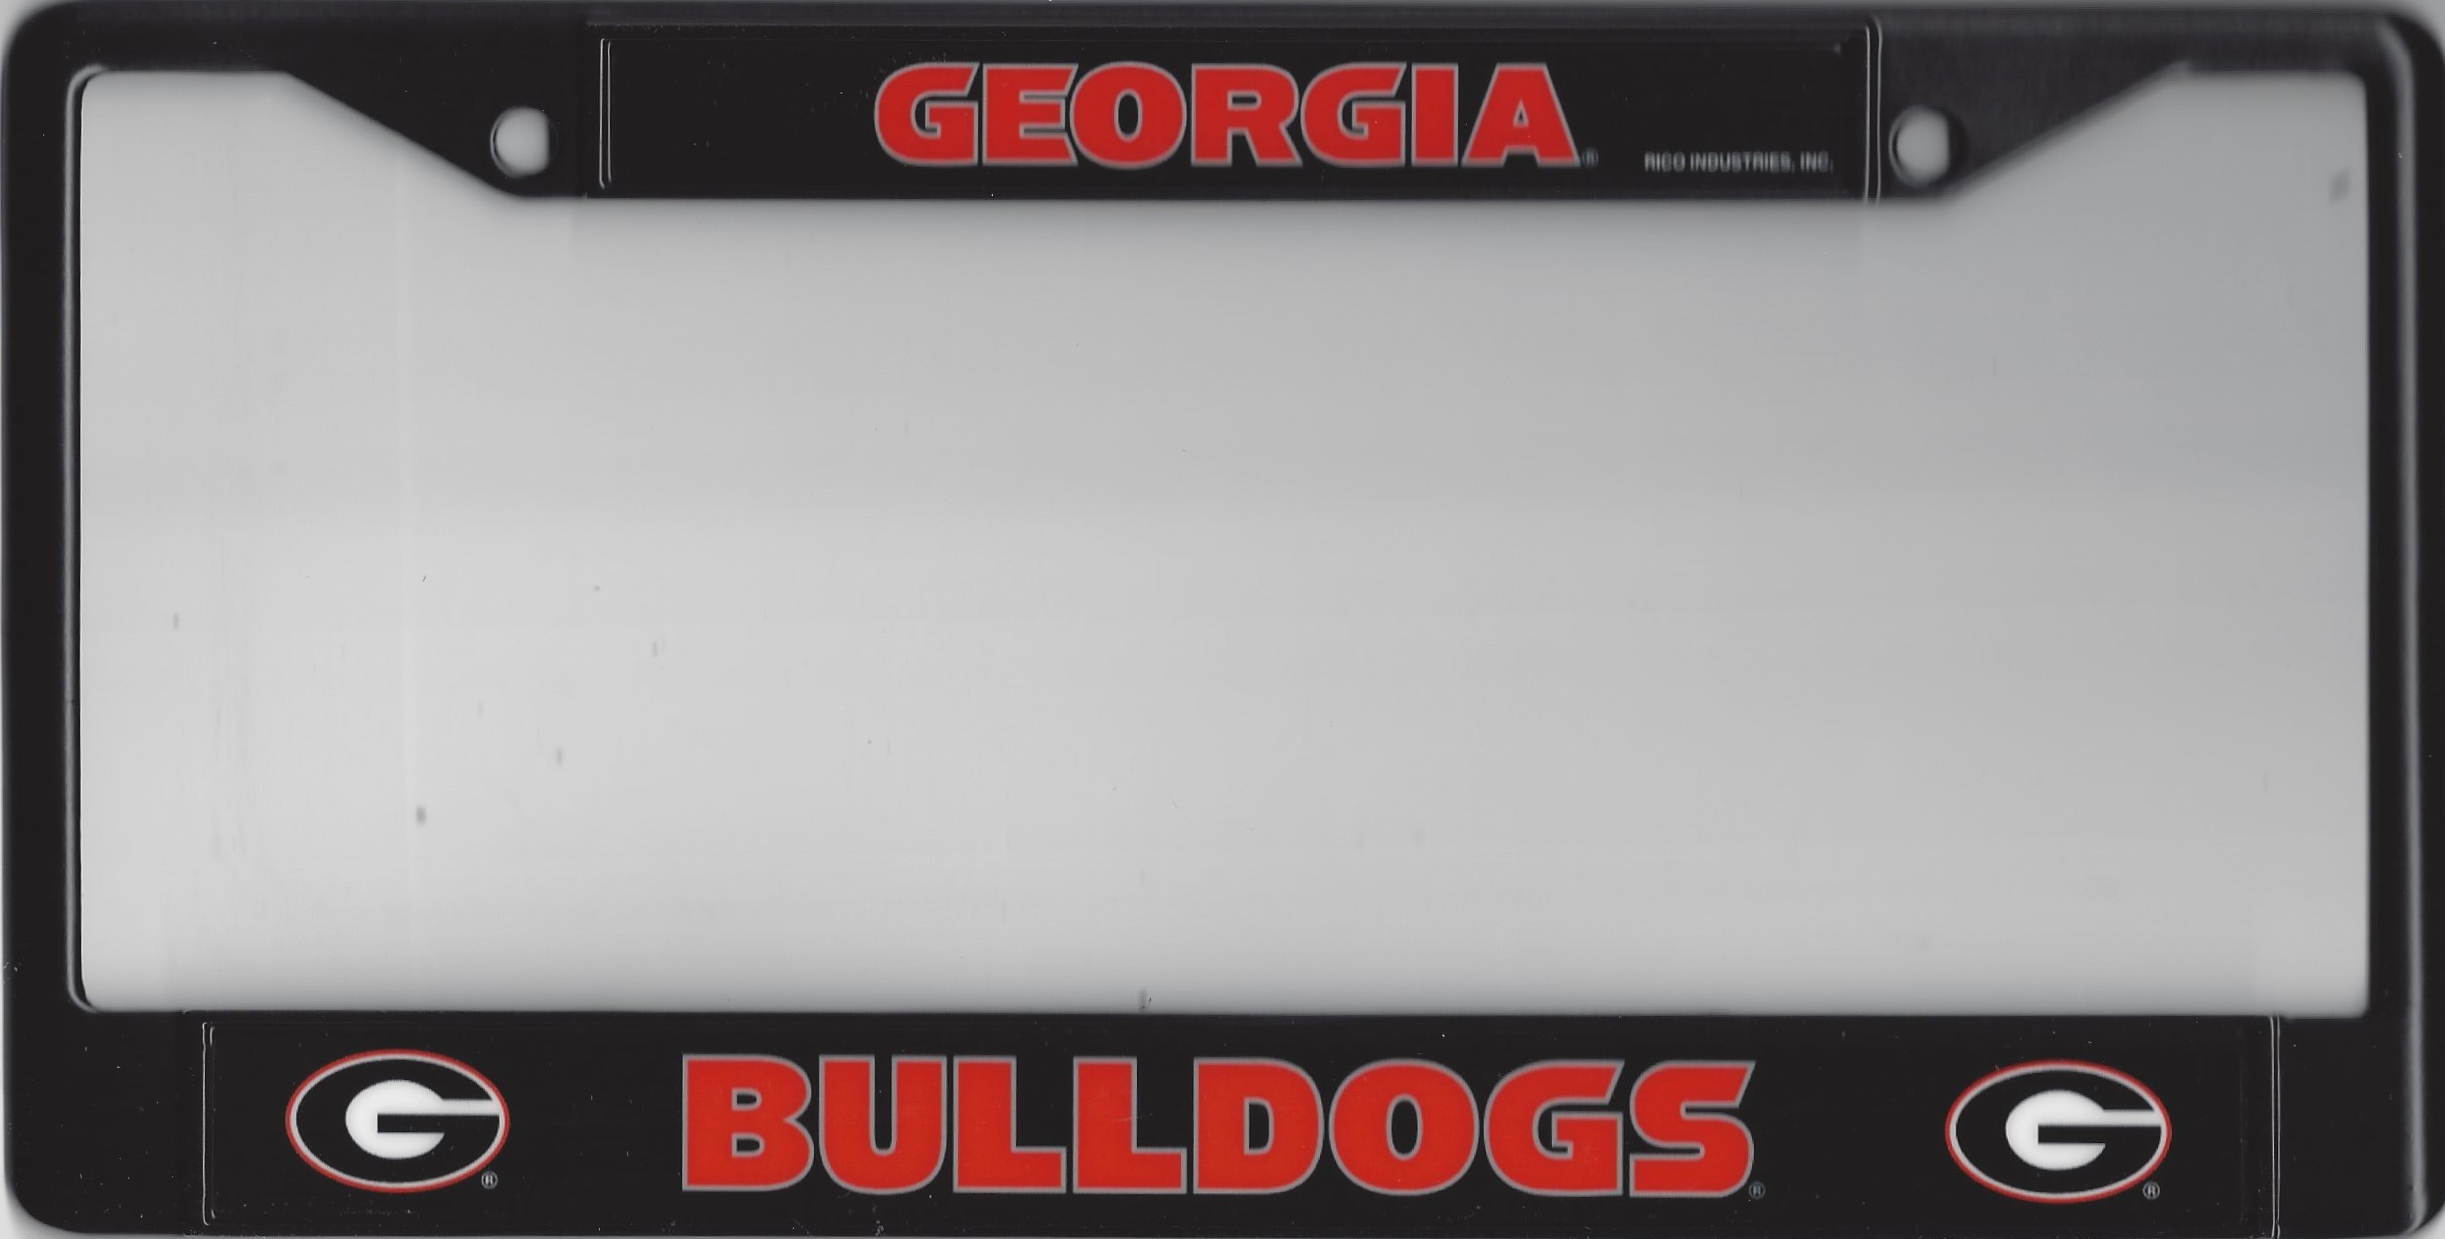 Georgia Bulldogs Black License Plate Frame Georgia Bulldogs Black ...